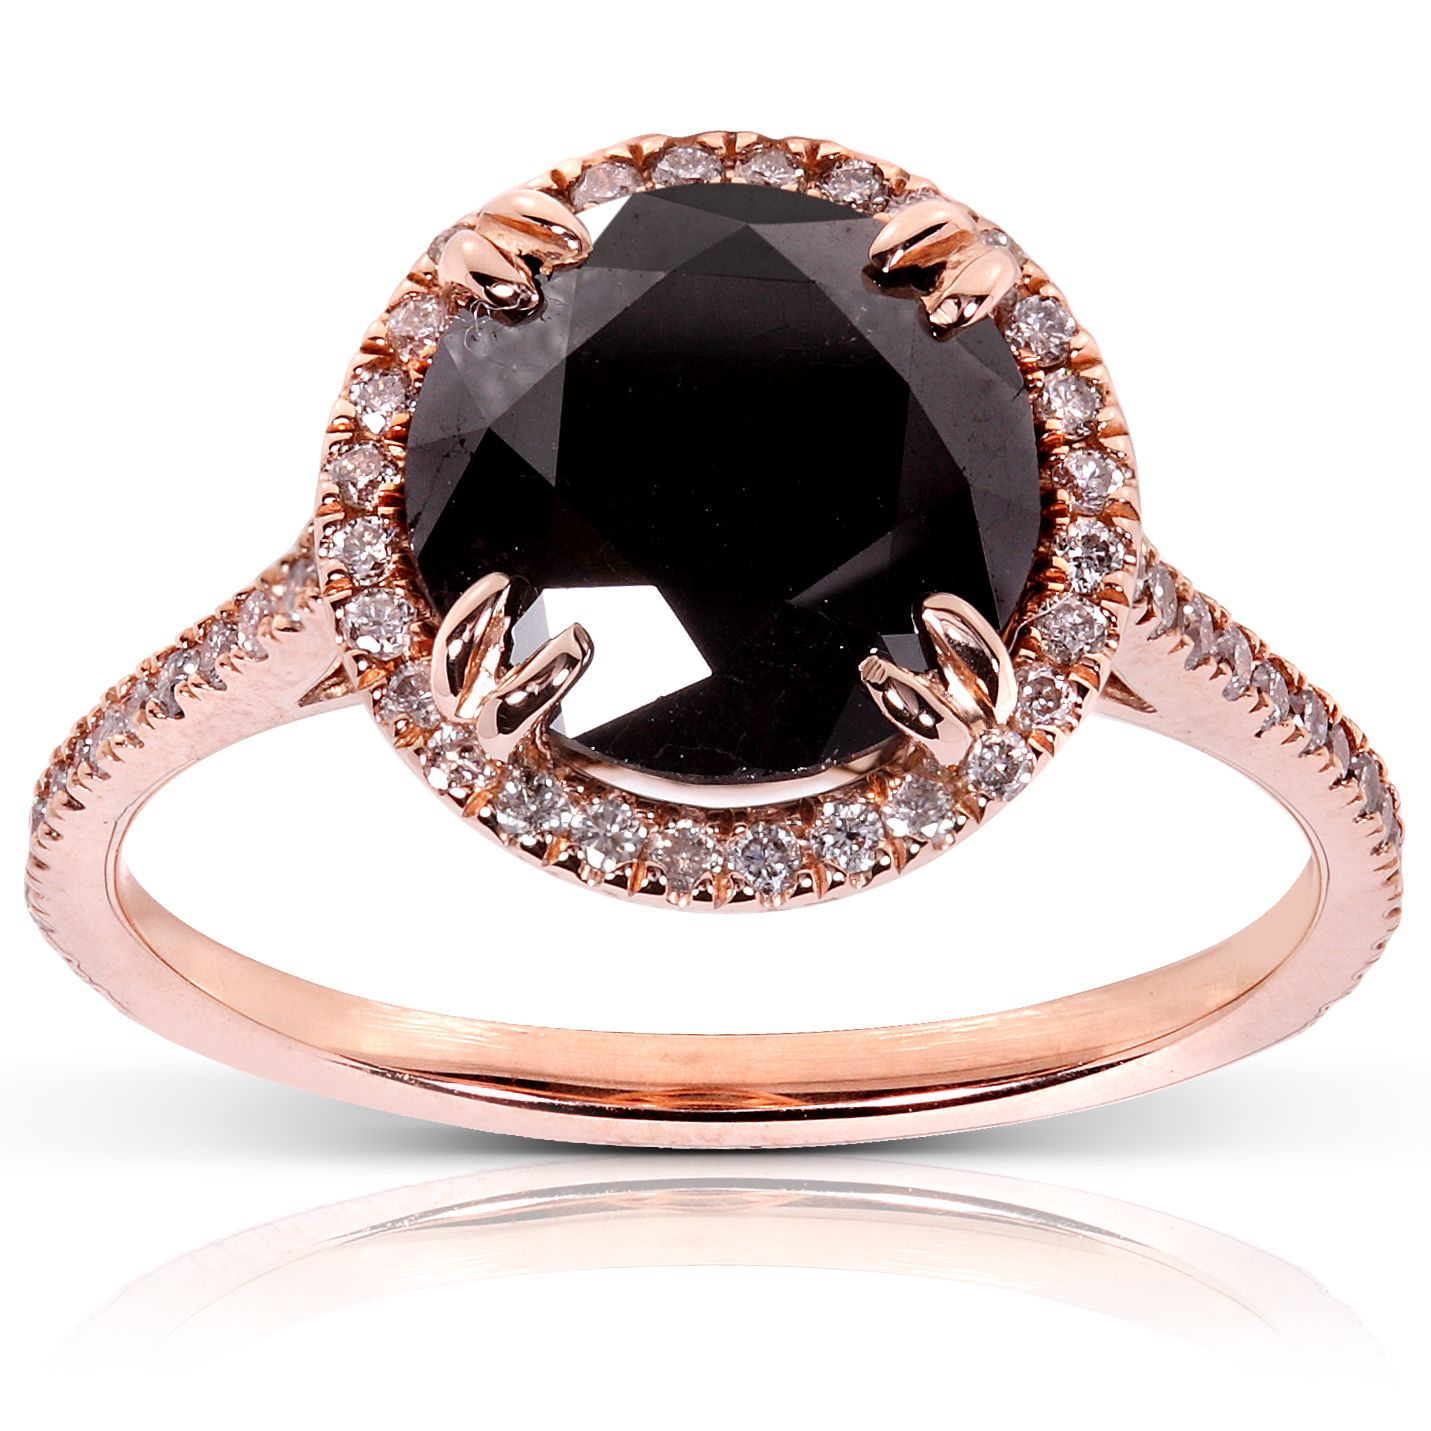 AMAZING AND BRIGHTLY JEWELRY FOR SOUTH AFRICAN LADIES TO BE MORE ATTRACTIVE 3